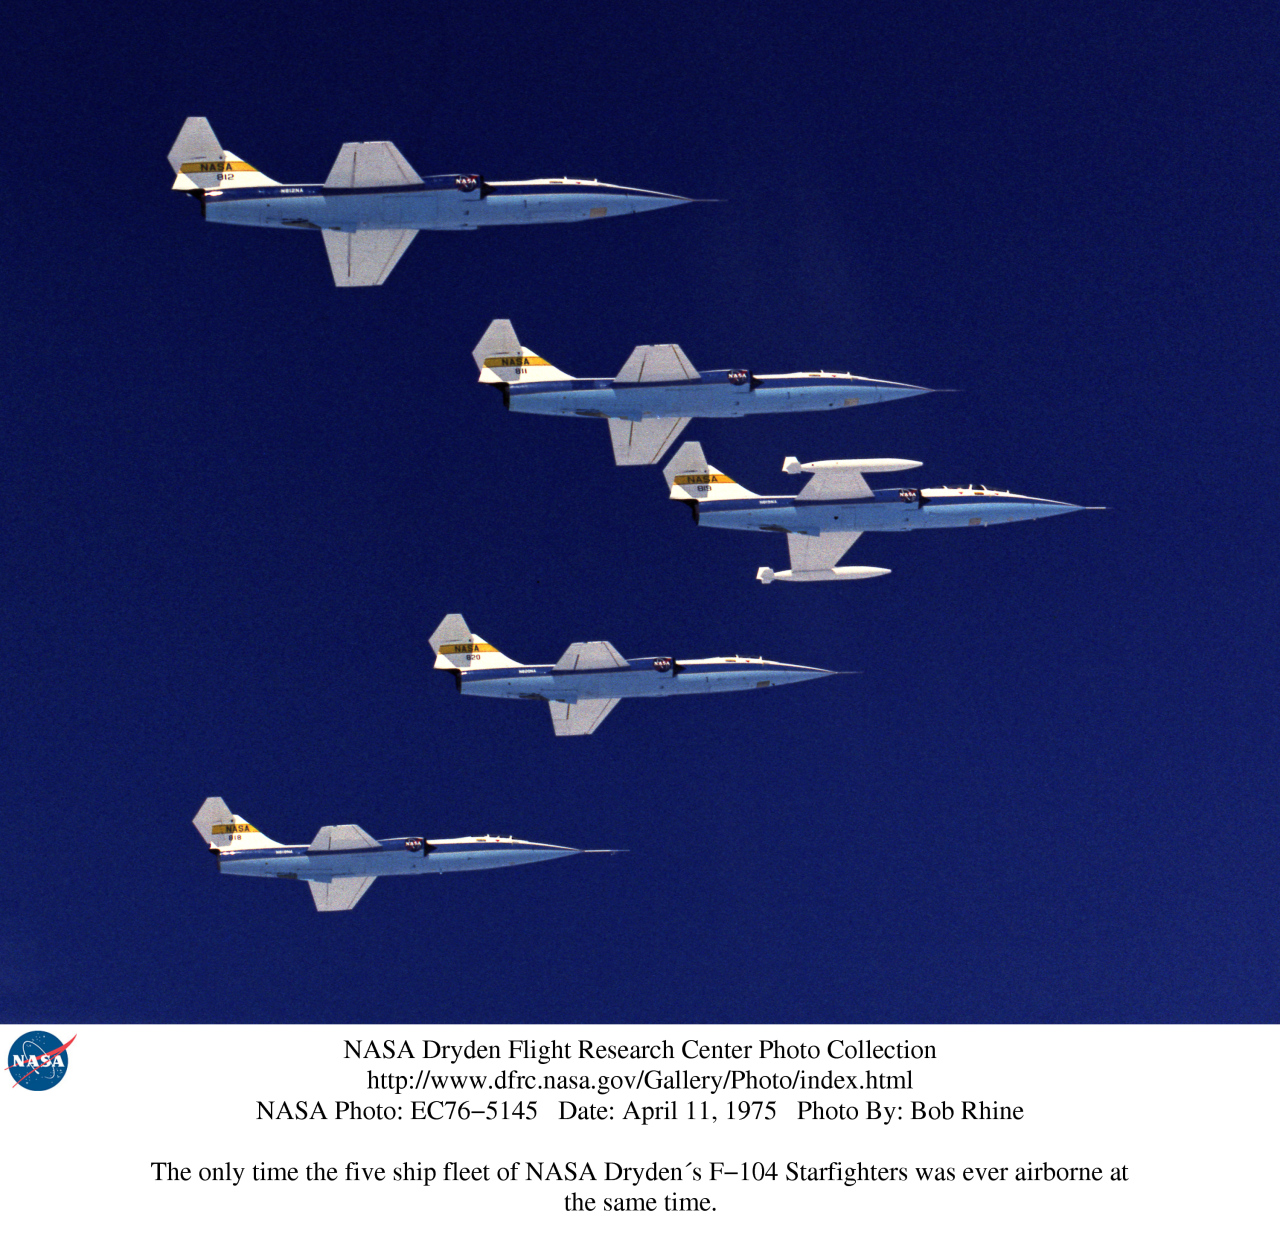 f 104 nasa dryden test fleet - photo #8